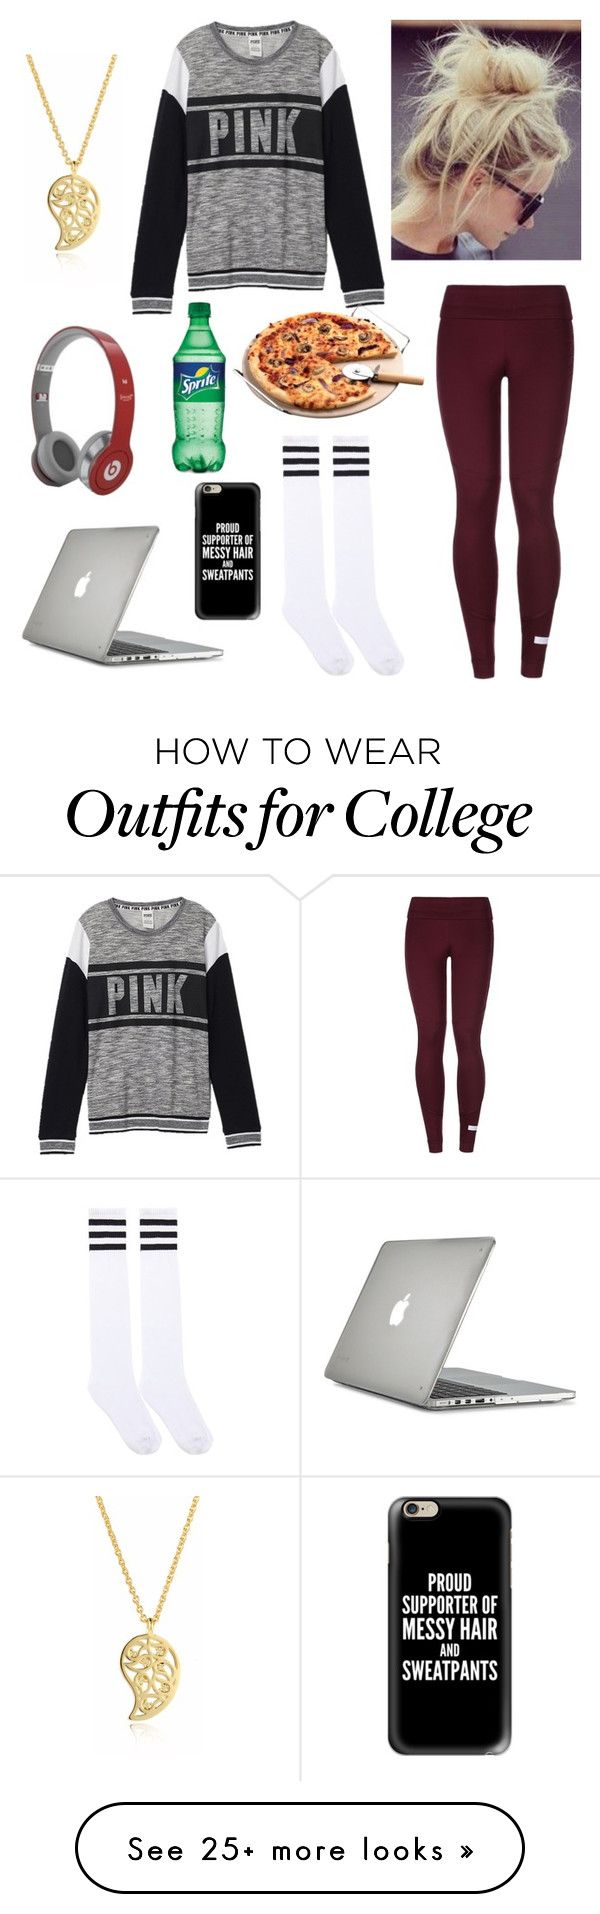 """Lazy days are a must"" by emily-colquitt on Polyvore featuring Victoria's Secret, adidas, Sonal Bhaskaran, Speck, Beats by Dr. Dre and Casetify"